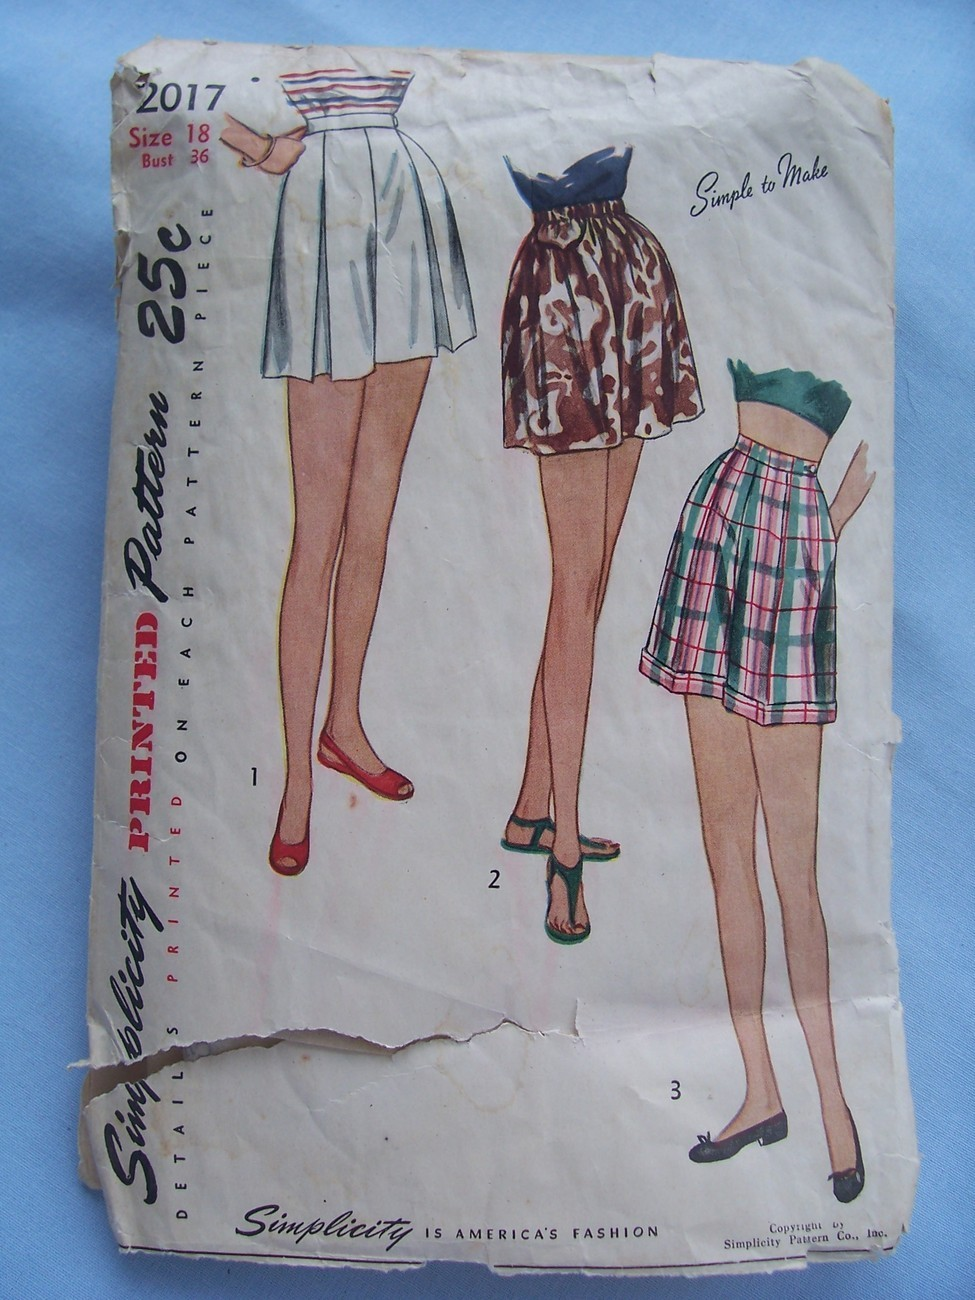 1947 Simplicity 2017 Misses Shorts W30 H39 Vintage Pattern Simplicity